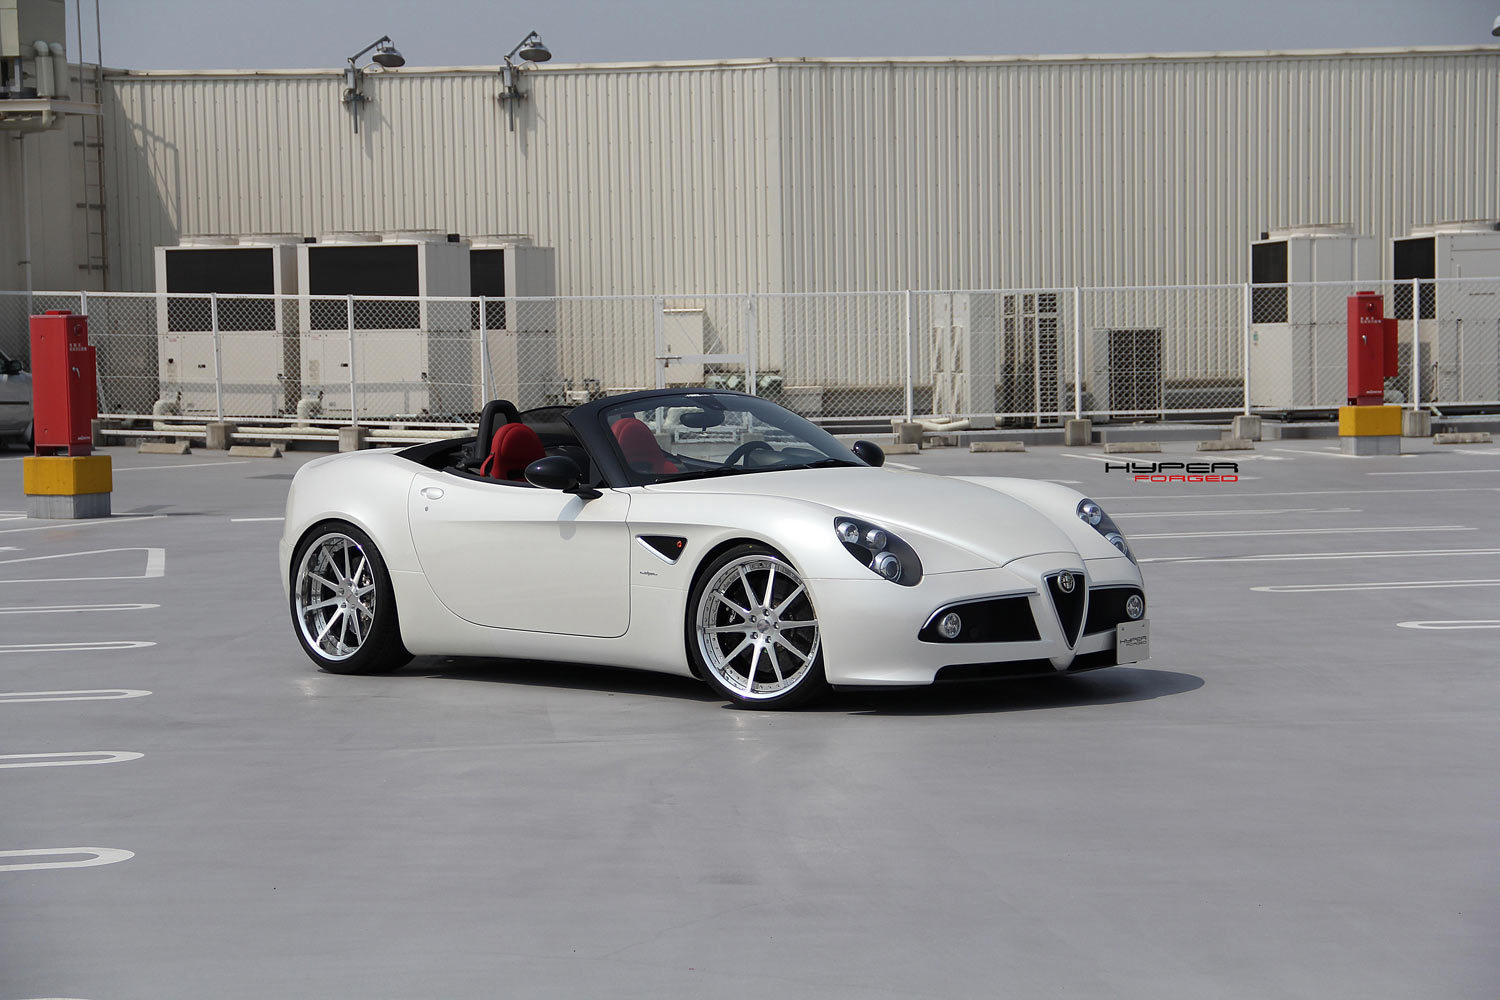 Alfa Romeo 8C Competizione Spider fitted with 21'' HFC10 Polished